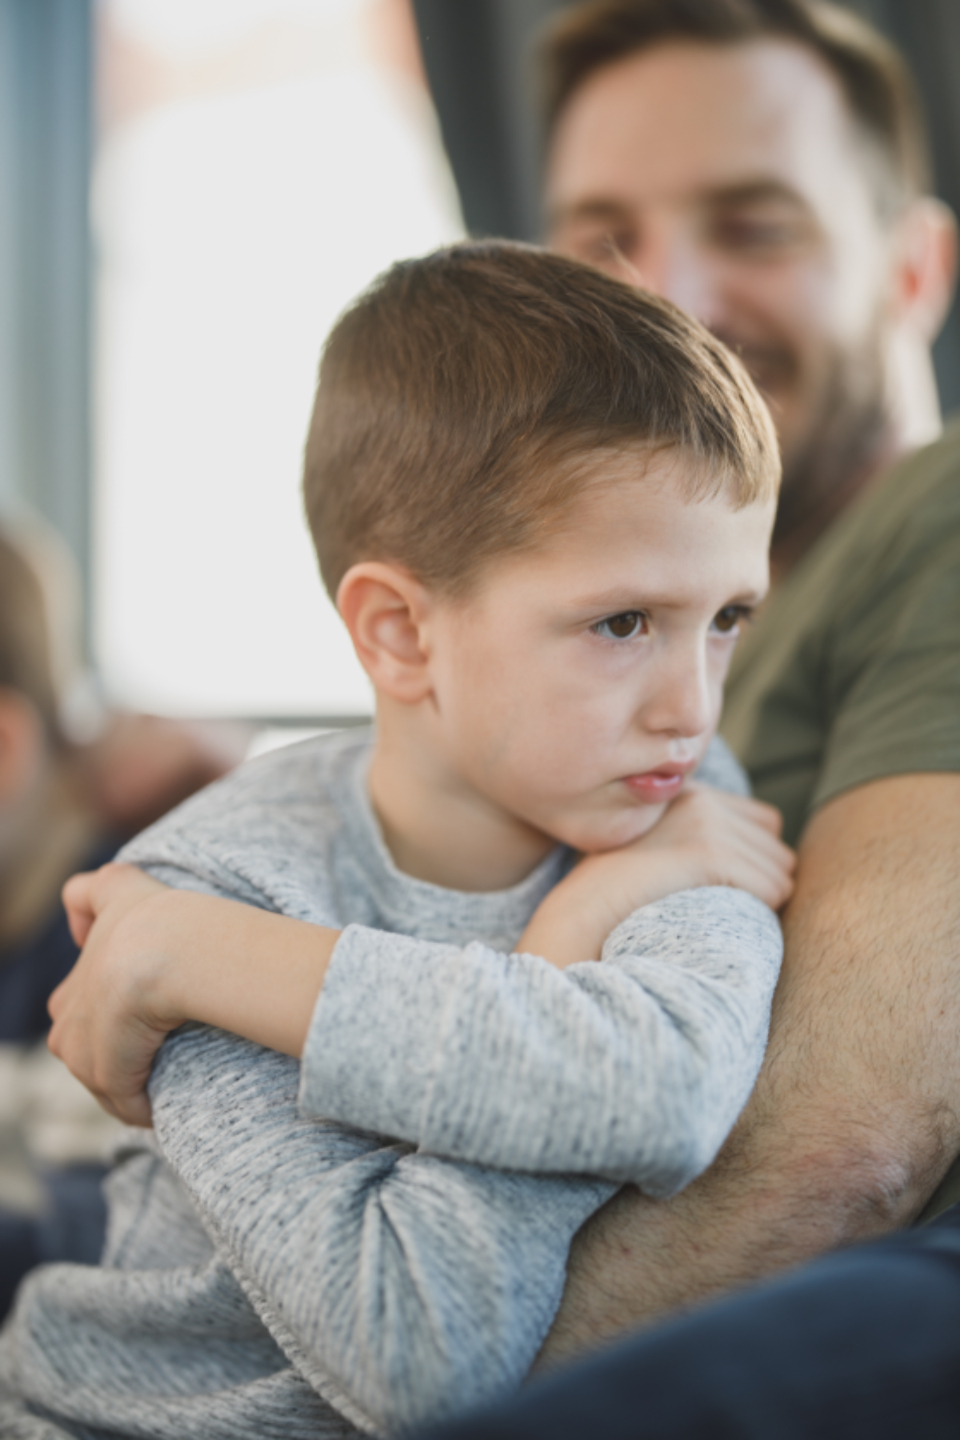 Free stock photo of sad child